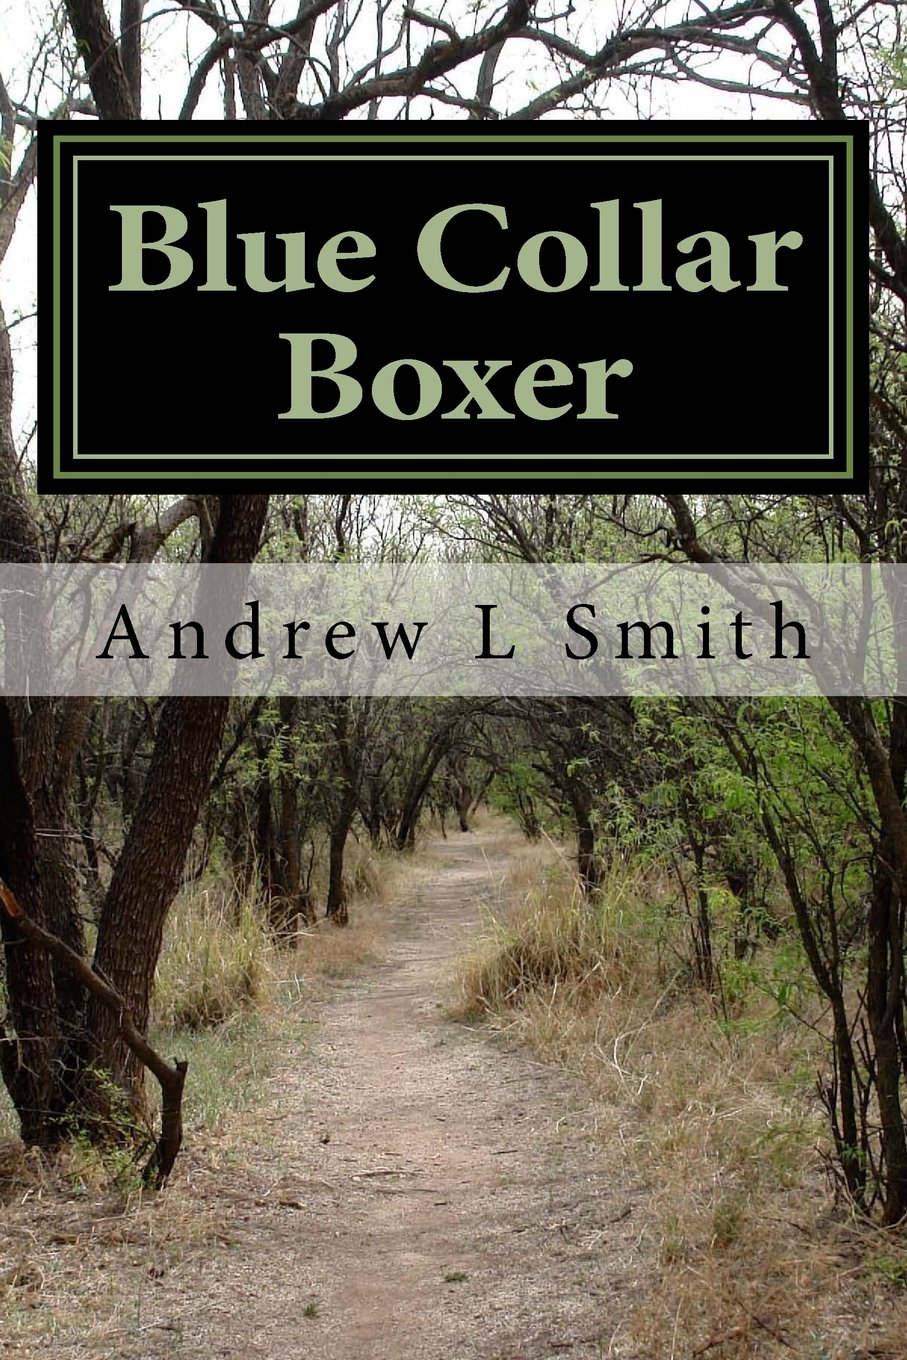 Blue Collar Boxer: Andrew L Smith: 9781979053518: Amazon.com ...